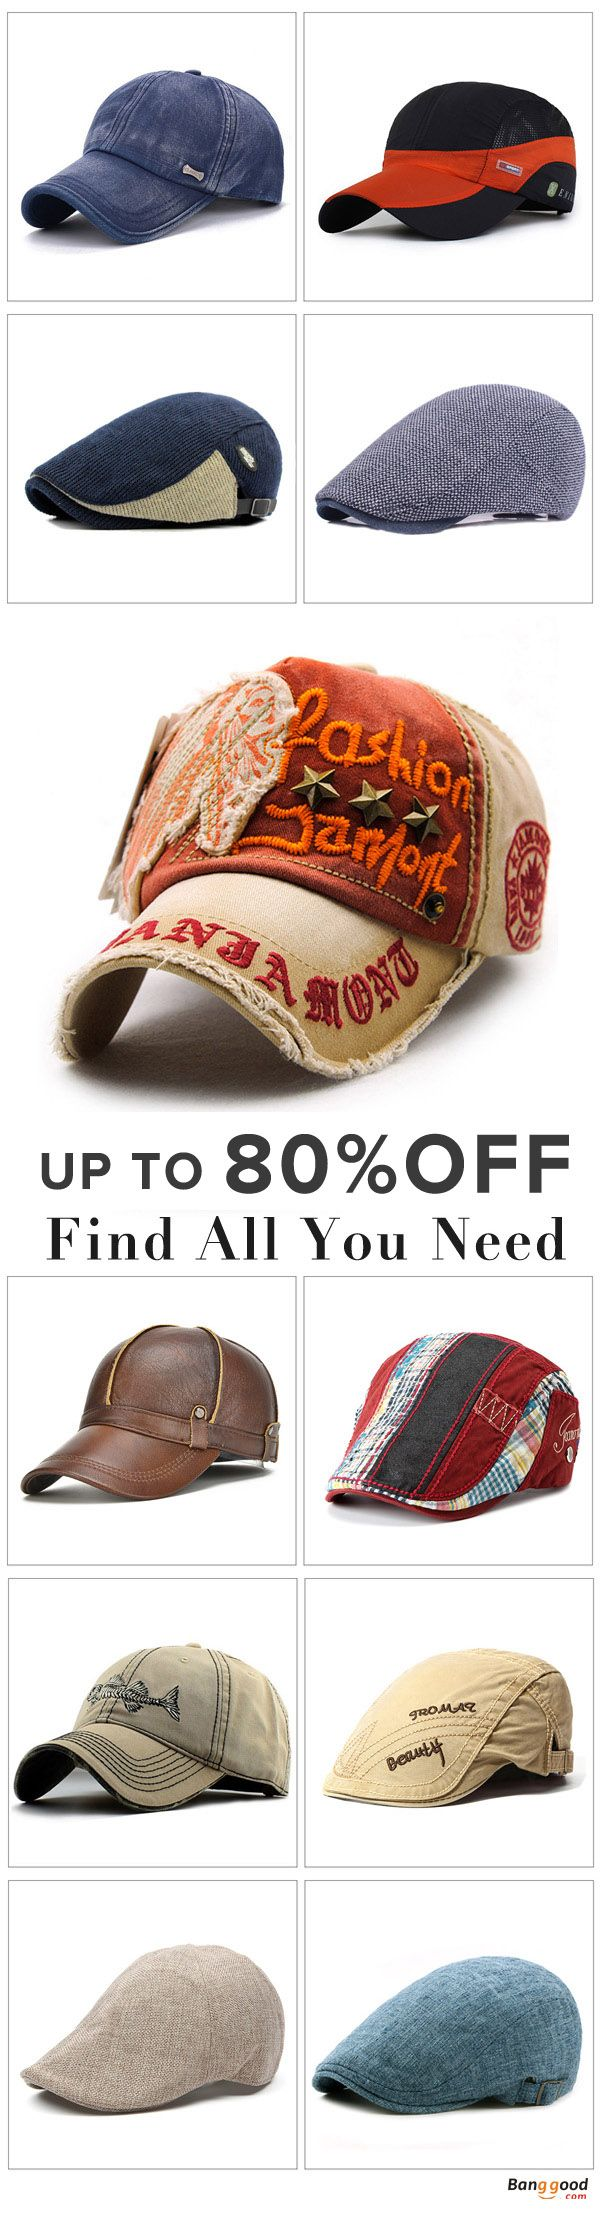 Hot Sales Accessories. Men's Cap, Men's Fashion, Beret Hat, Golf Hat, Baseball Hat, Cabbie Hat. Hot Sales Hat, All the accessories you want can find in banggood.com. Shop now~